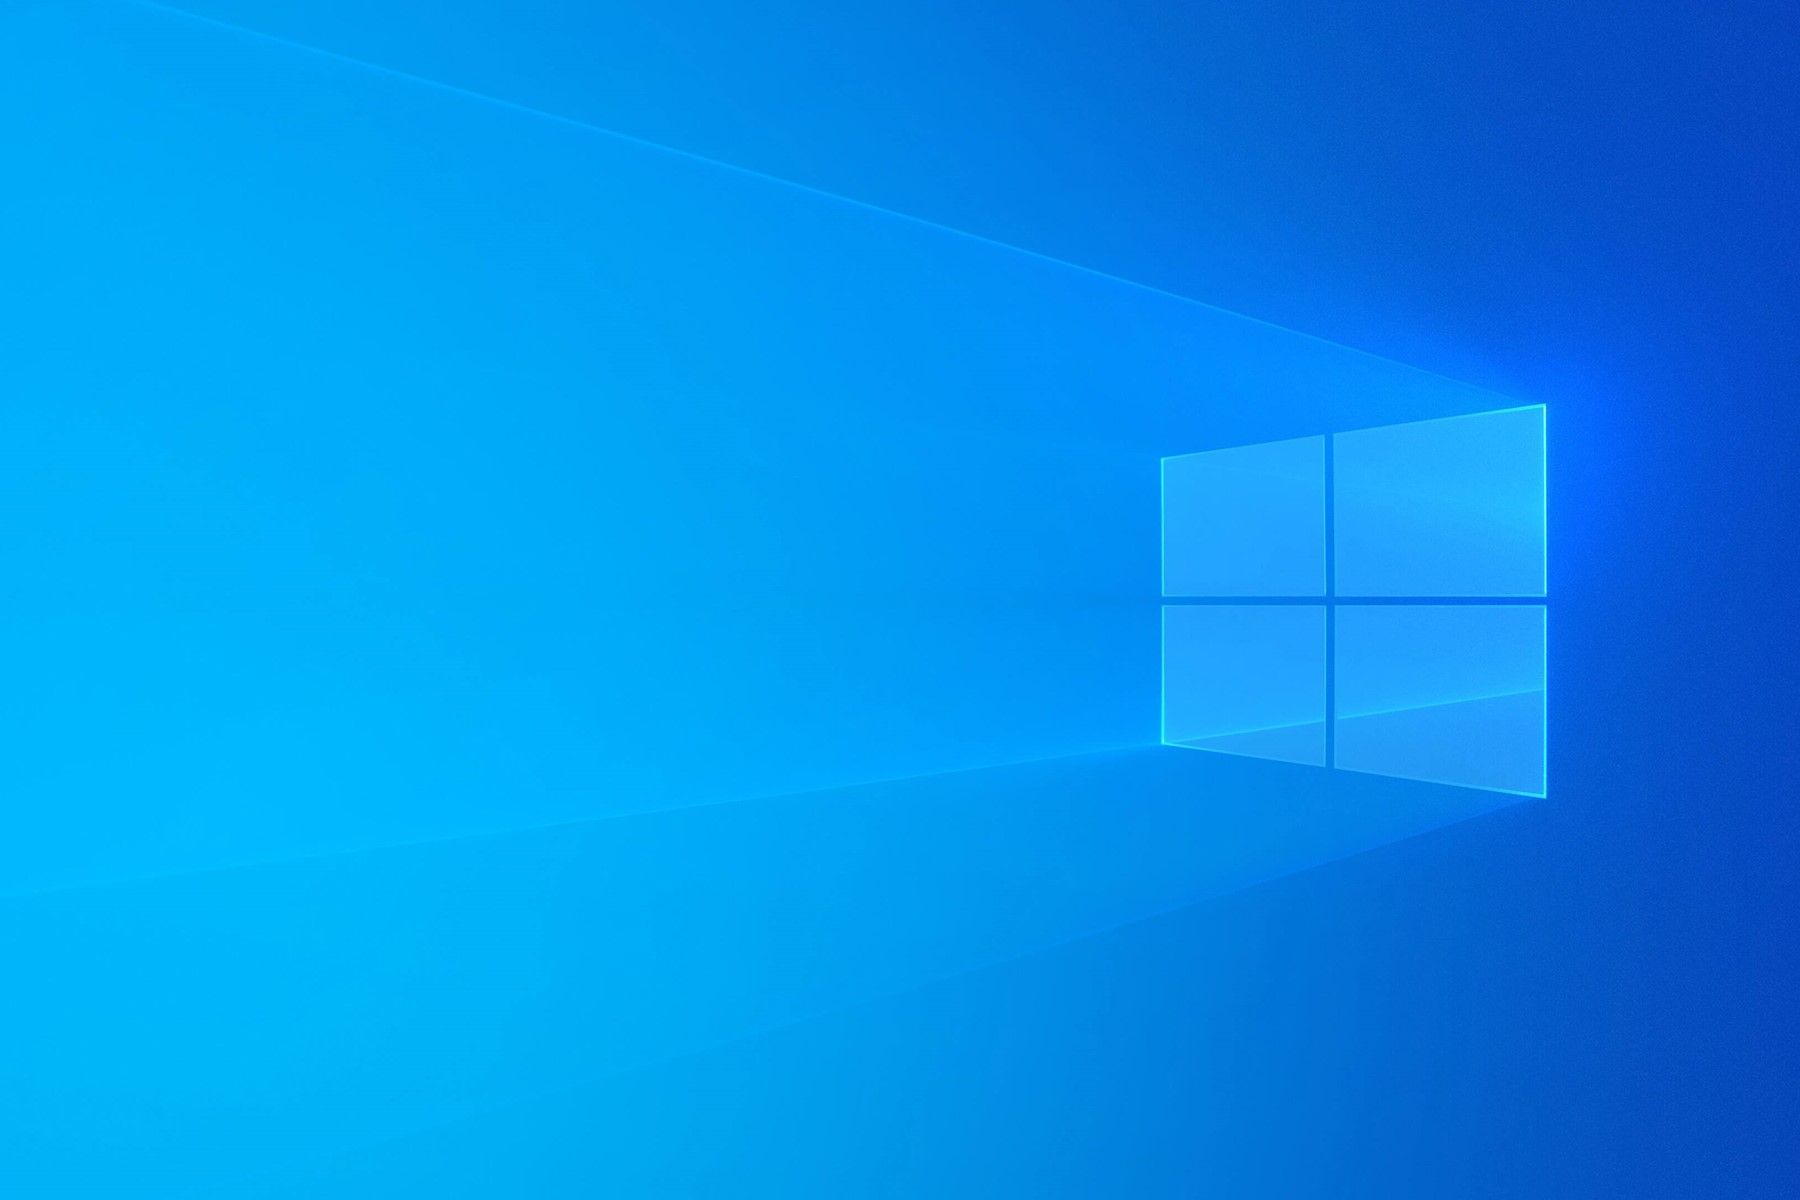 Wallpaper for windows 10